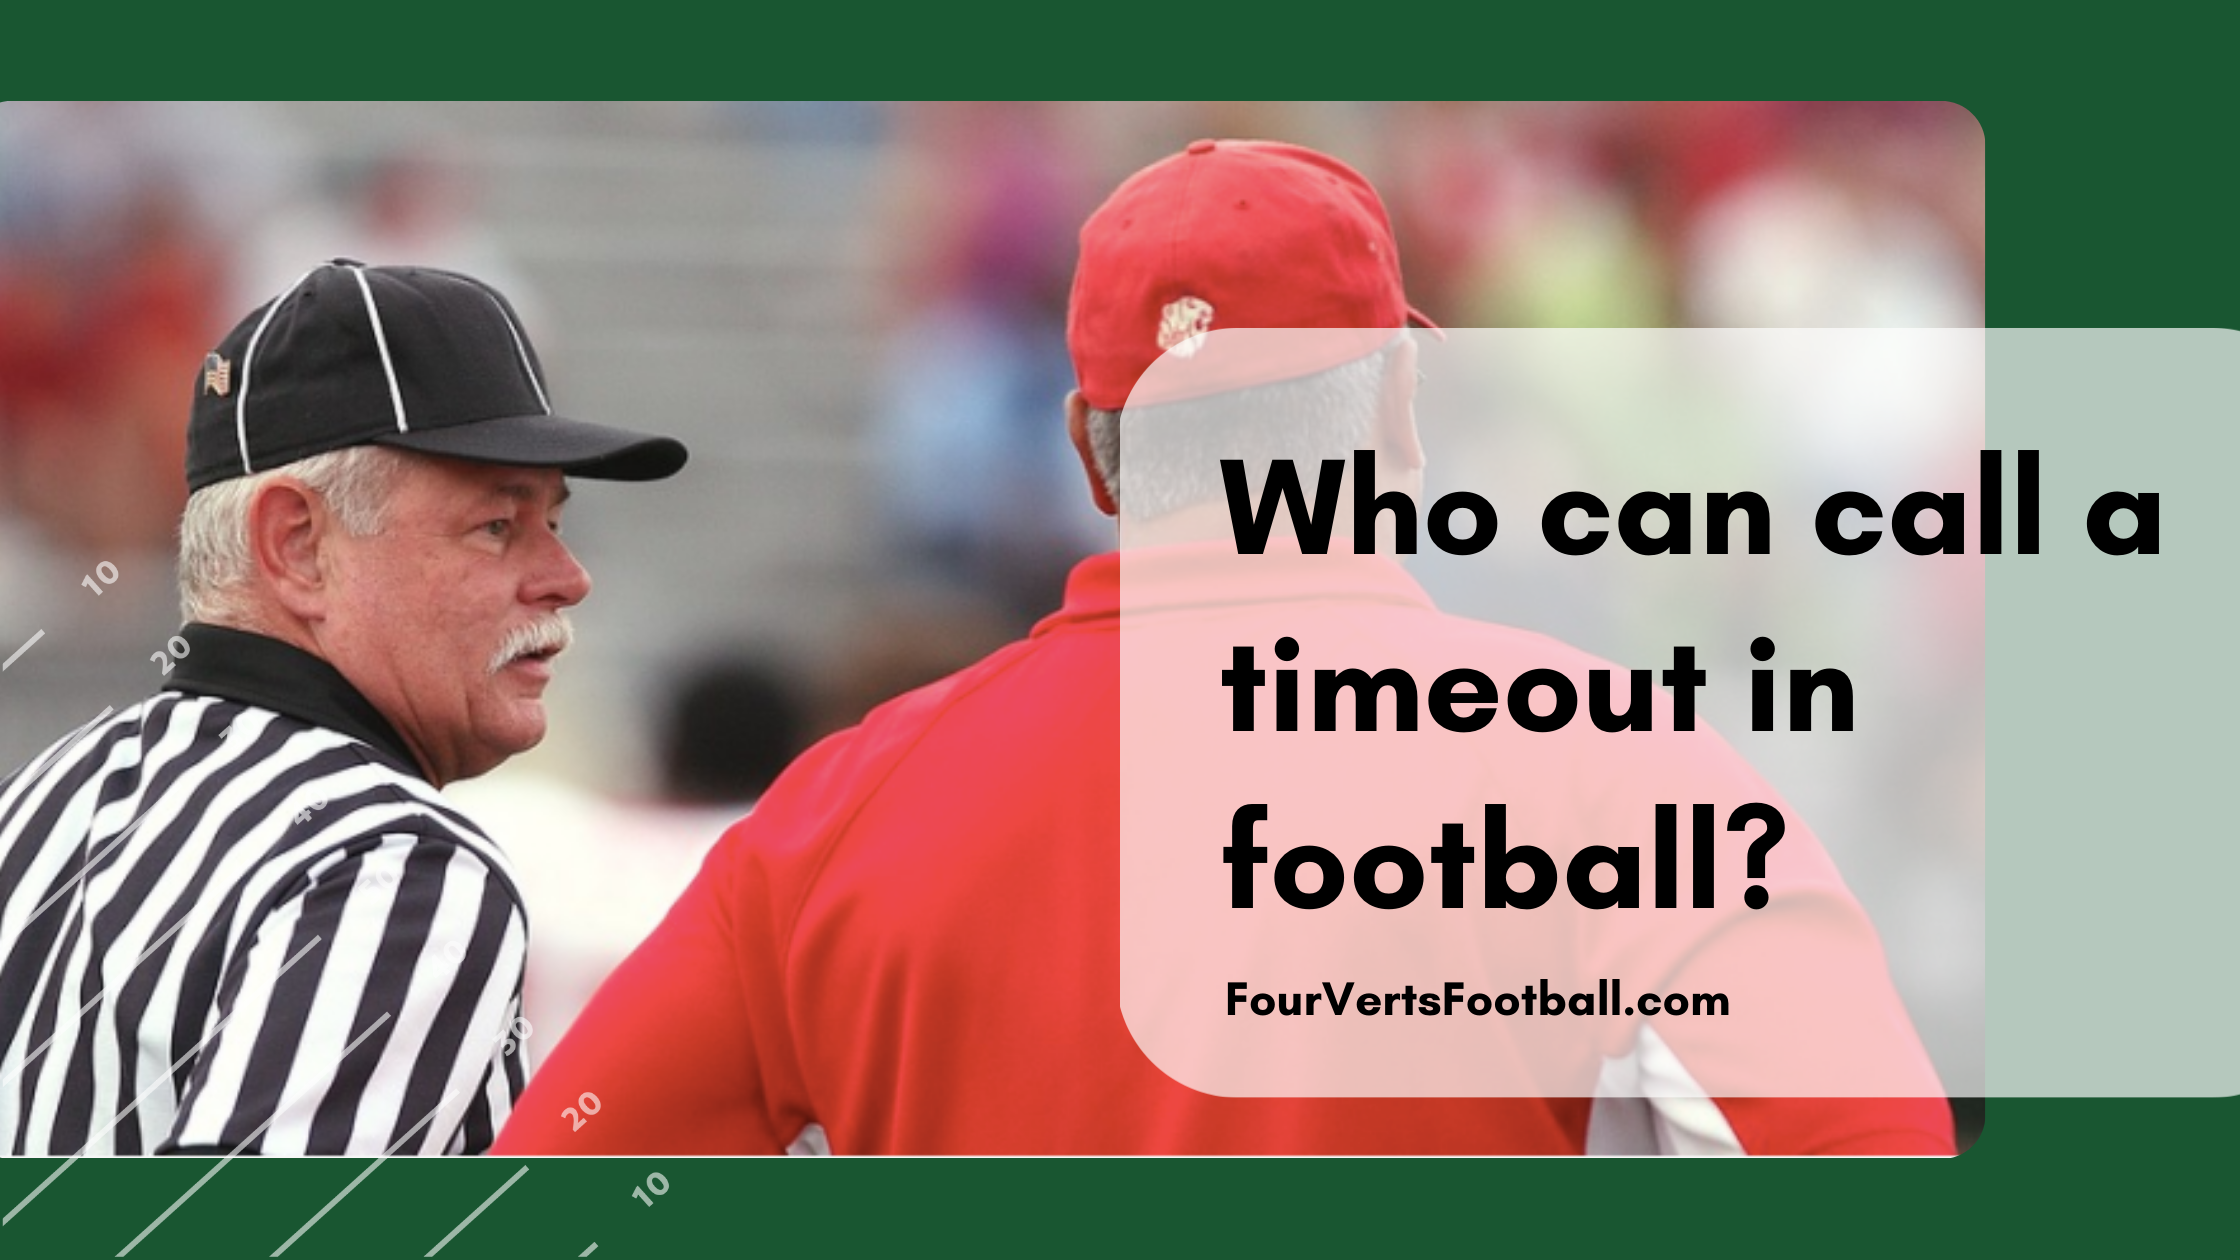 Who can call timeouts in football